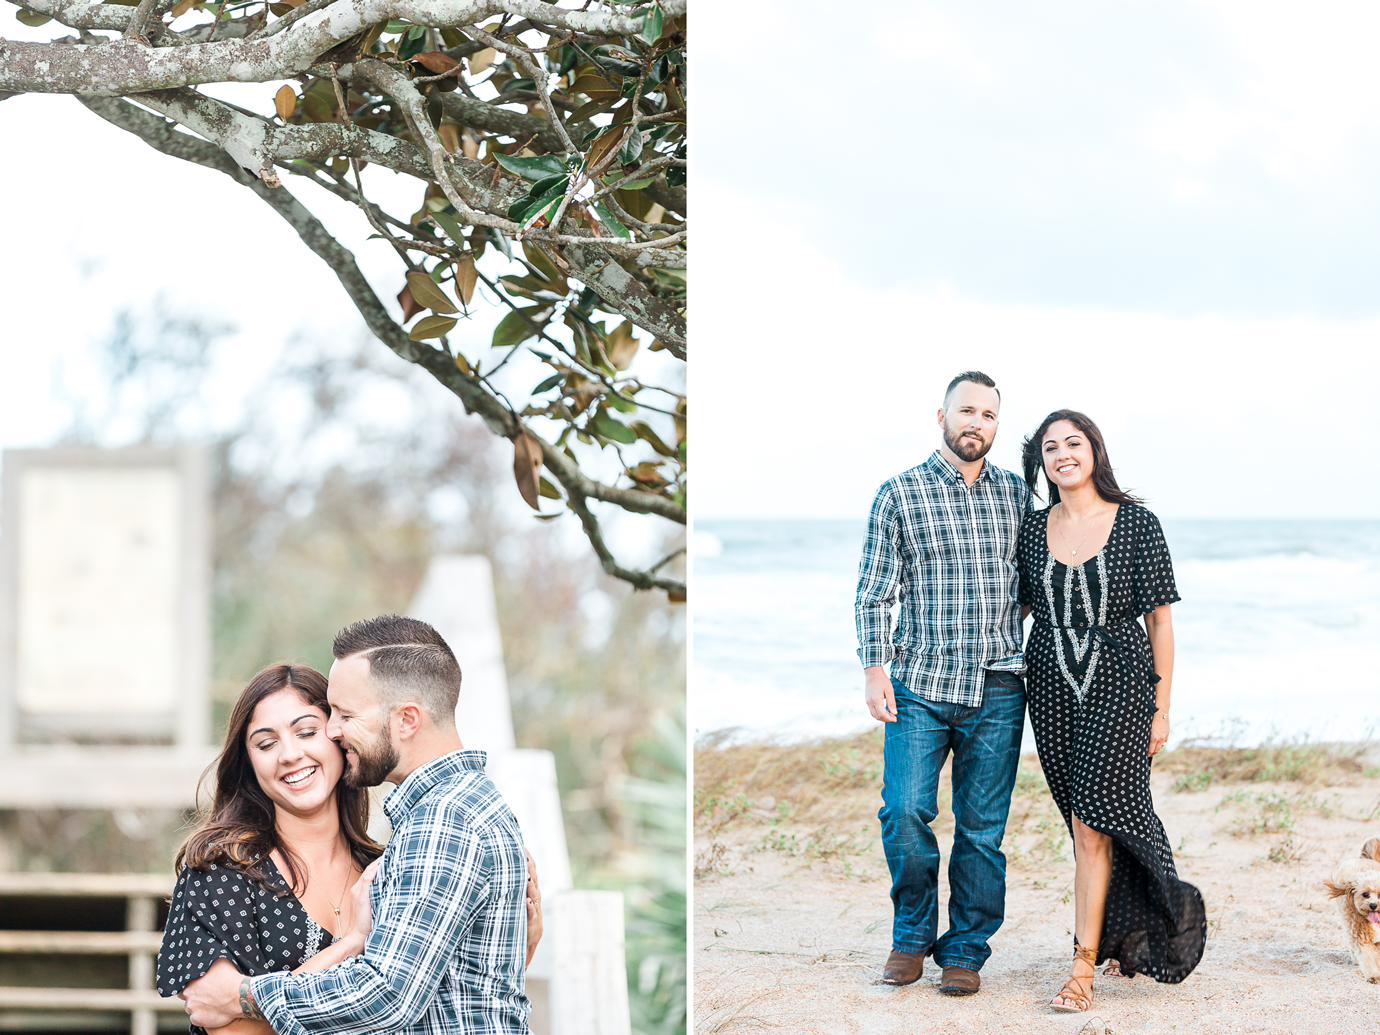 Romantic engagement photography session in Ponte Vedra